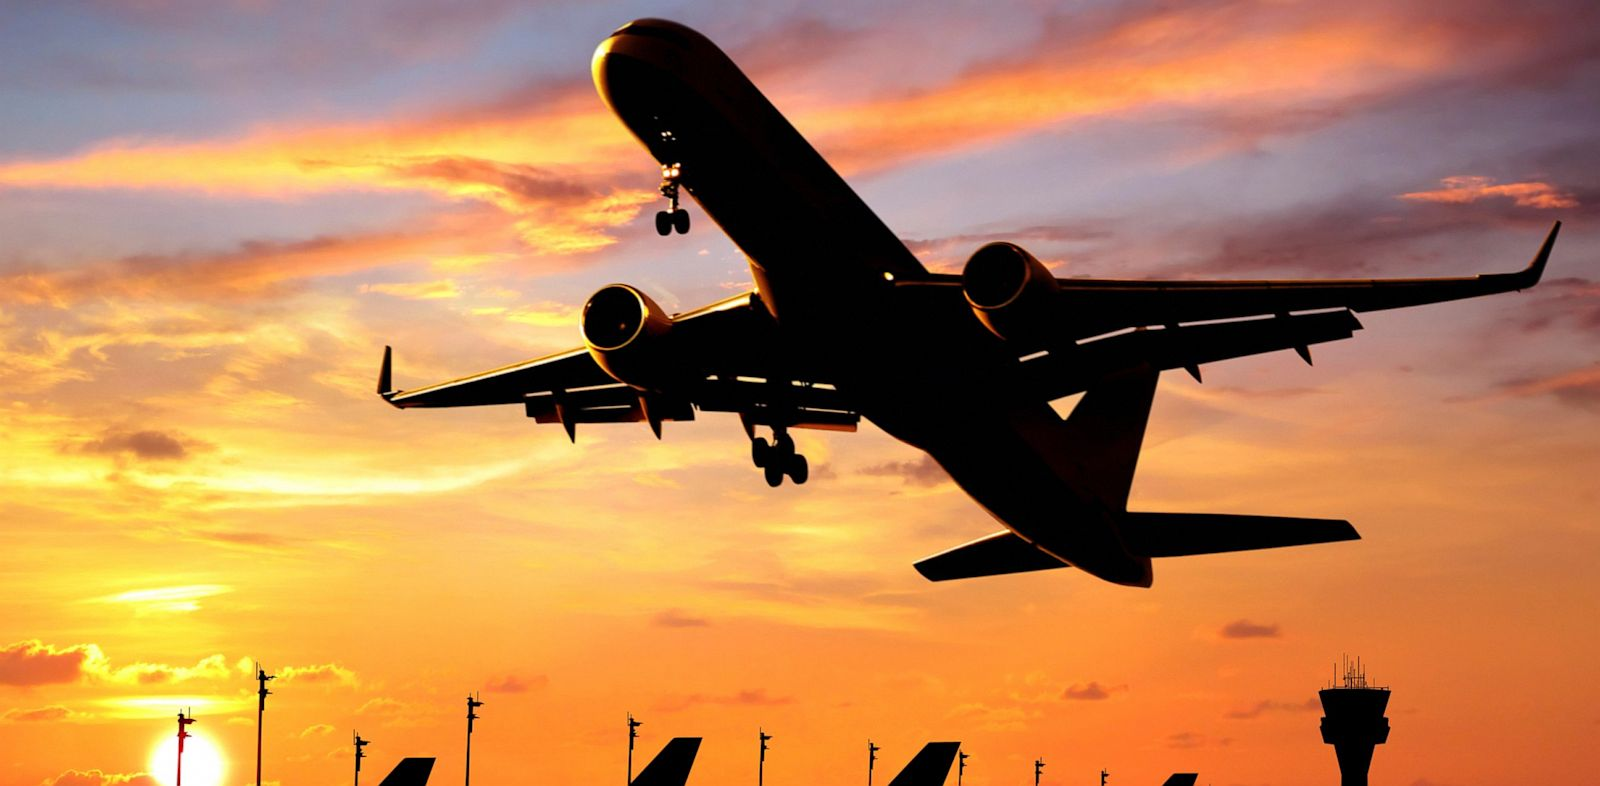 PHOTO: Fall Travel Deals, Airline deals, travel